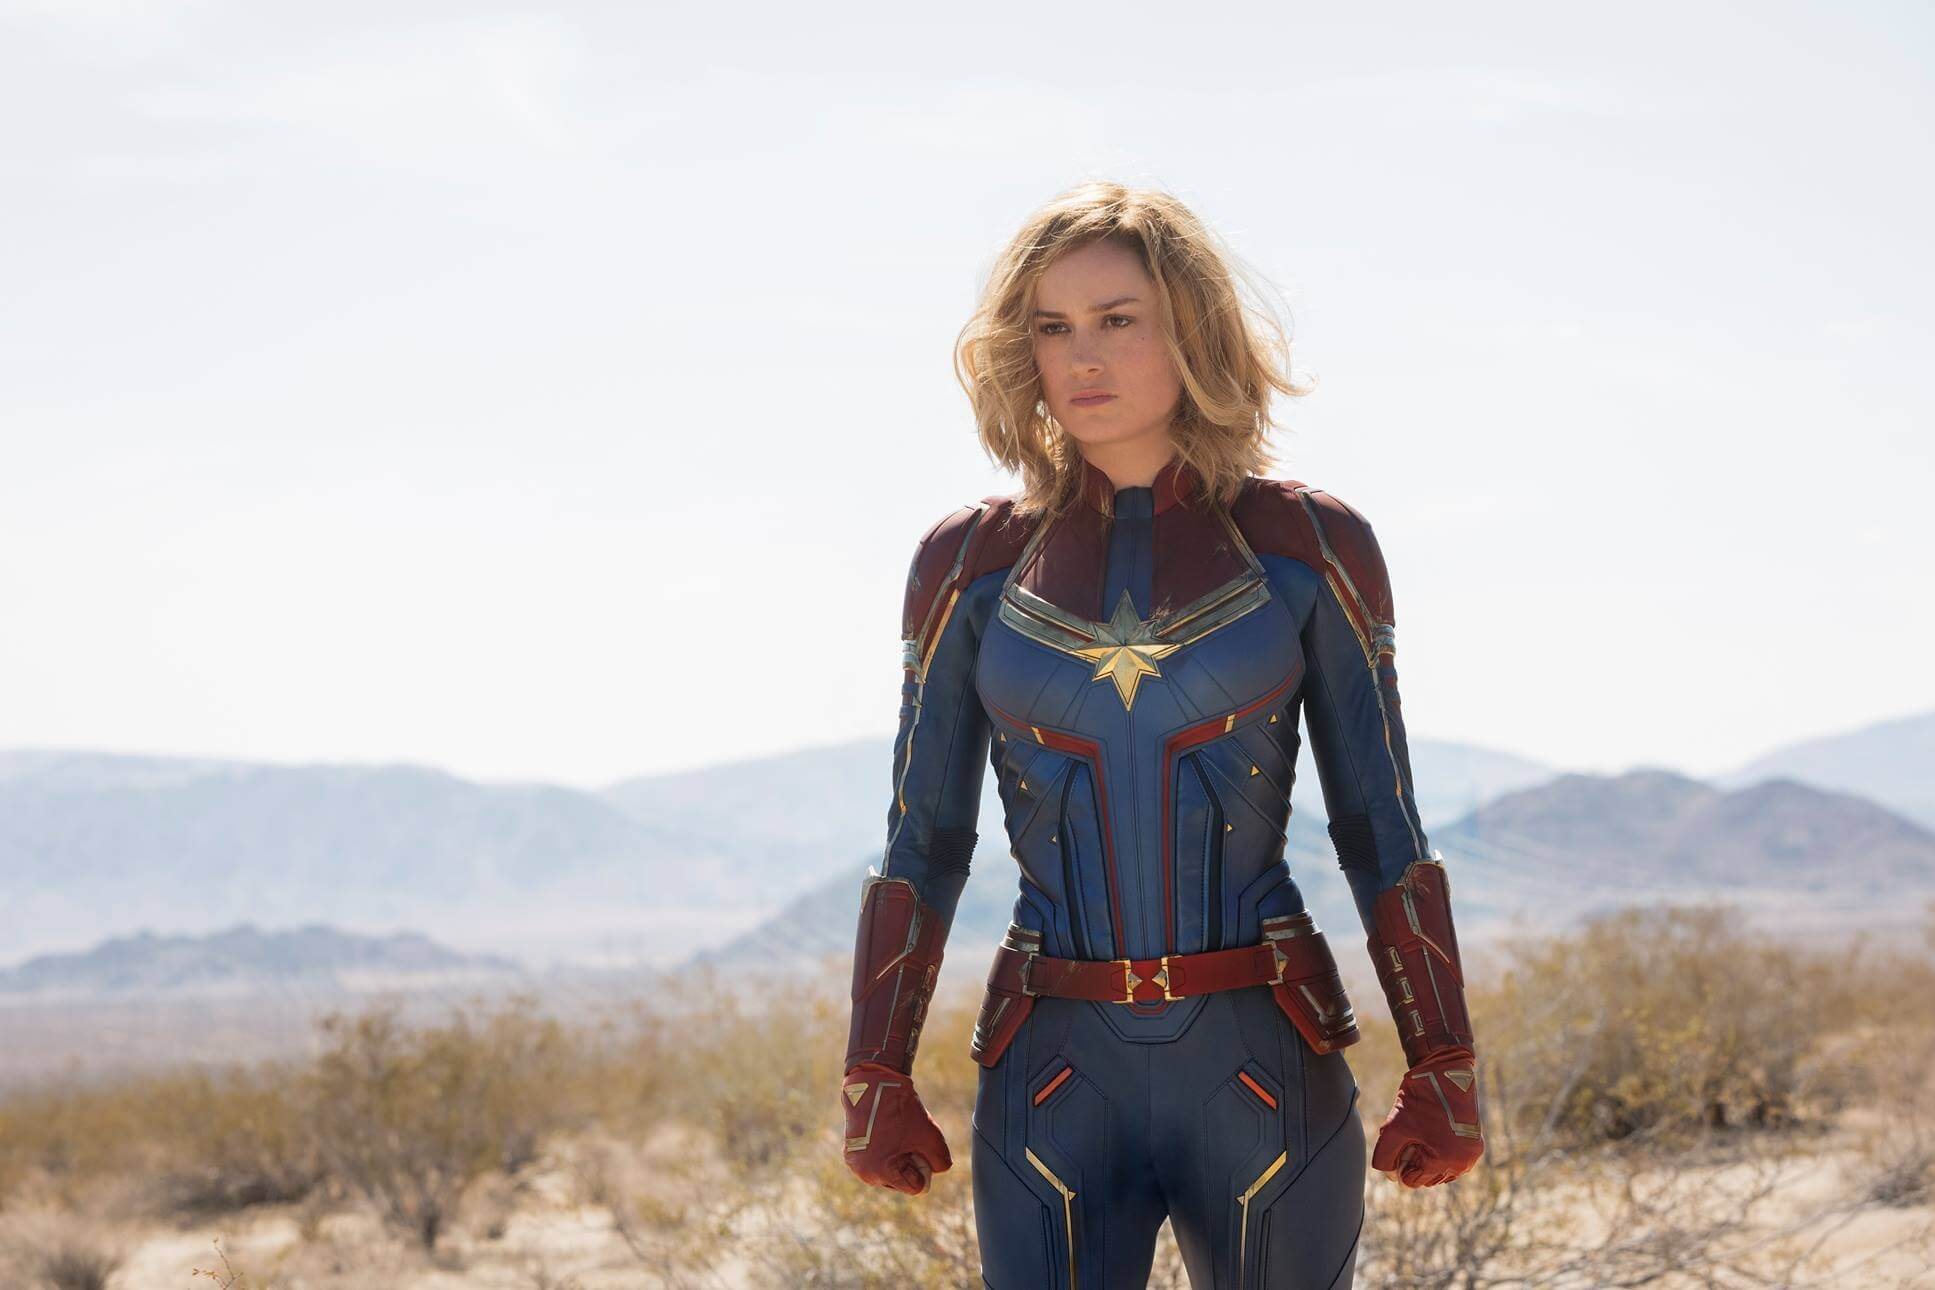 https://www.facebook.com/CaptainMarvelOfficial/photos/a.744442912338876/1833996260050197/?type=3&theater